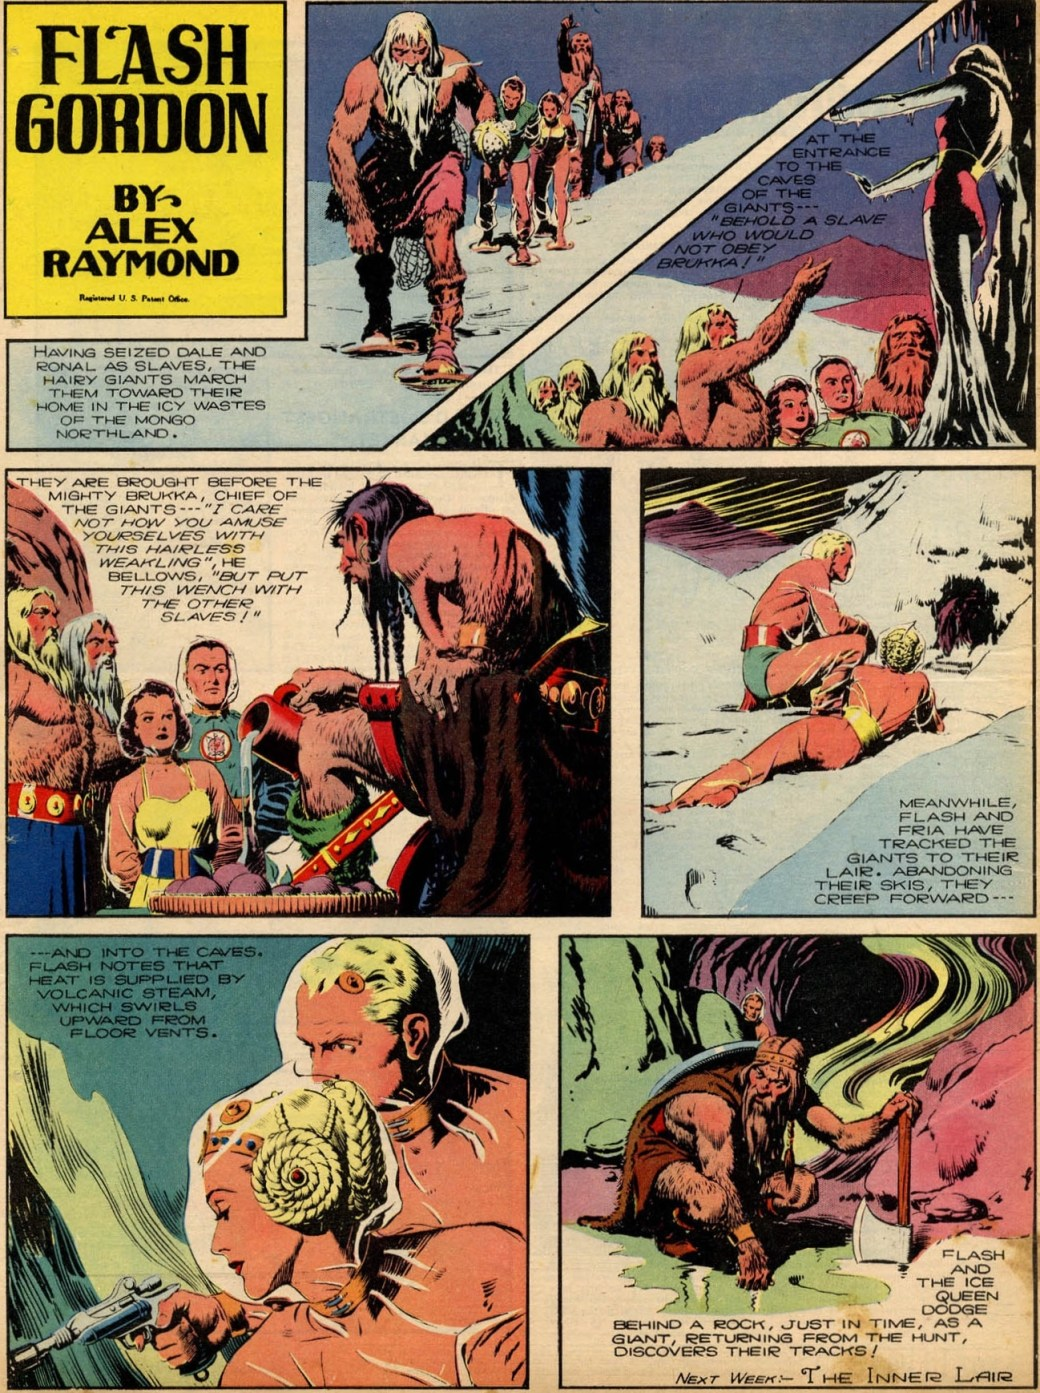 Flash Gordon av Alex Raymond från 28 maj 1939